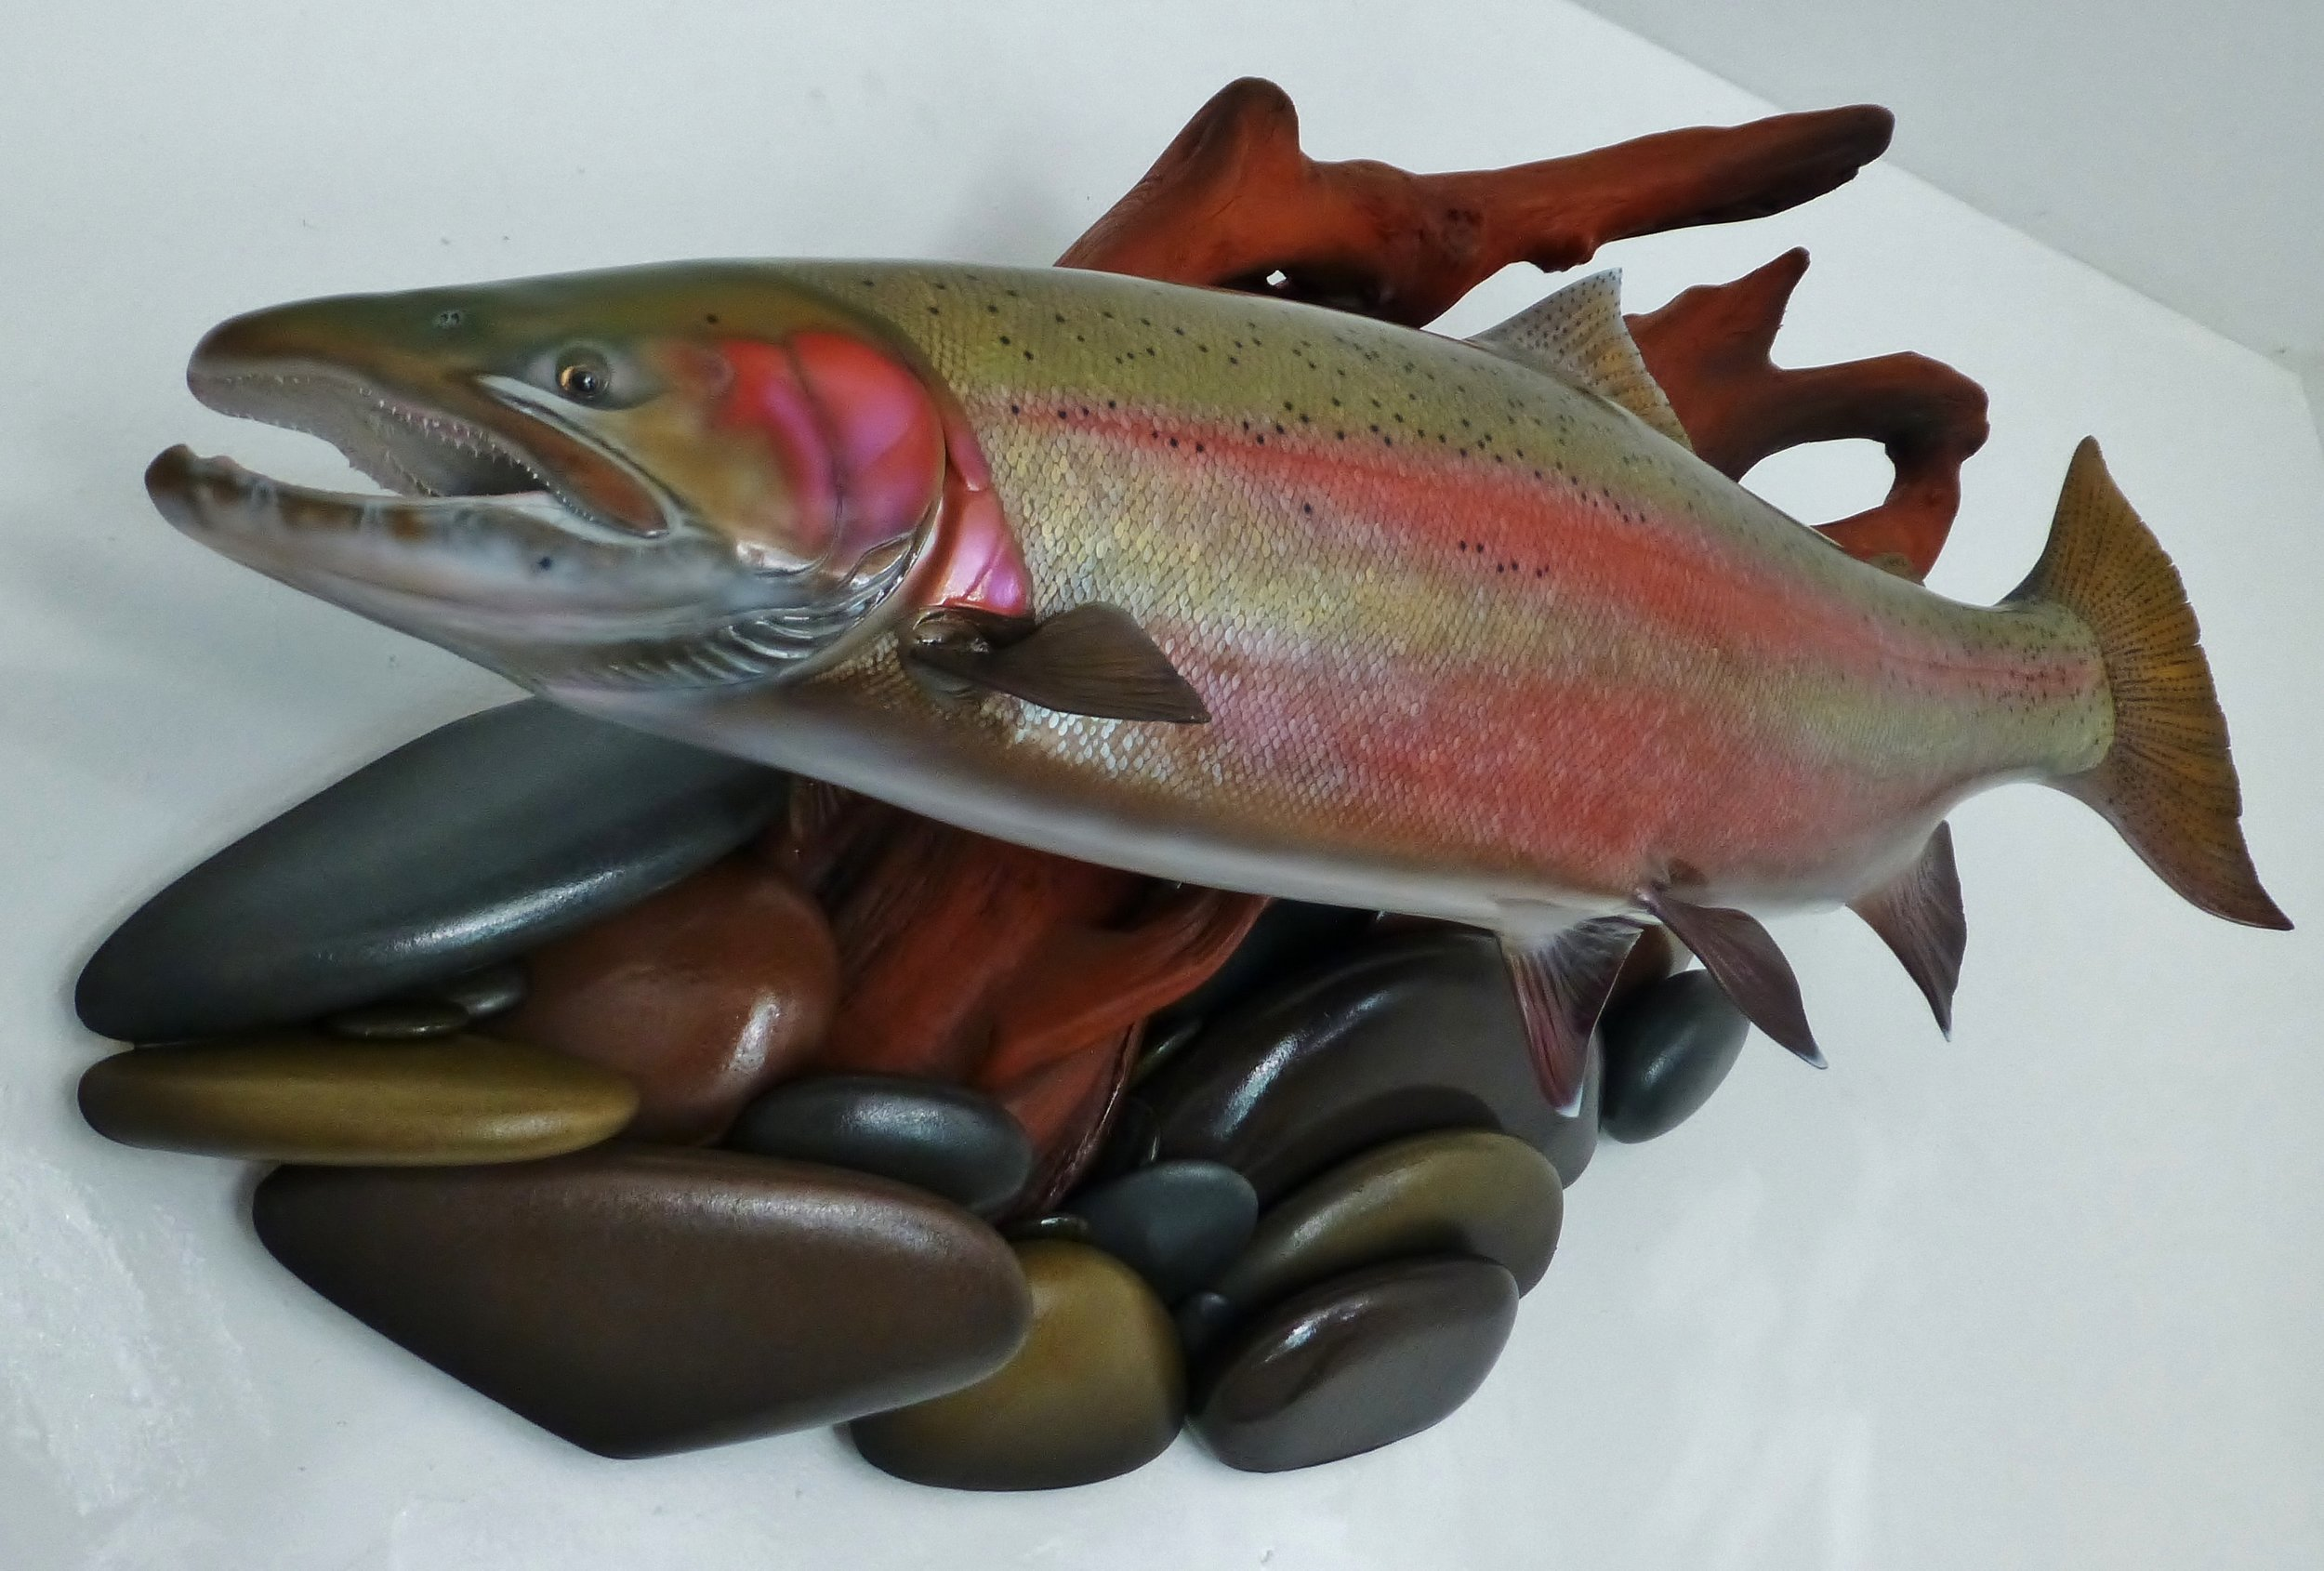 Steelhead fish replica art sculpture on river rock driftwood enhancement by Luke Filmer Blackwater replicas